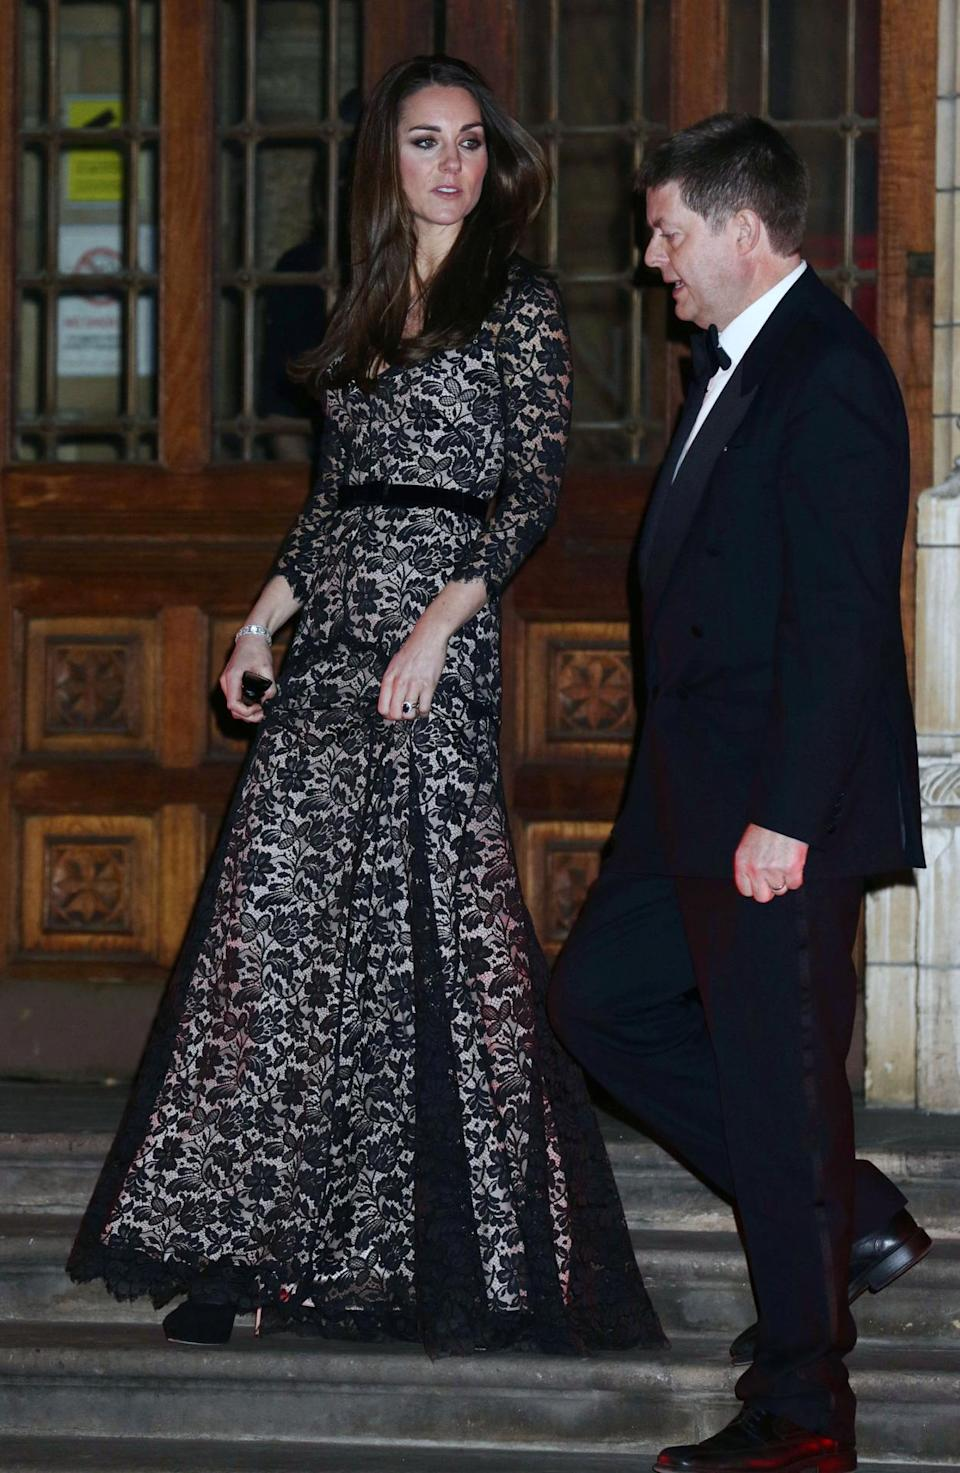 <p>For a screening of a David Attenborough film, the Duchess chose a black lace gown by Temperley London and Jimmy Choo platform pumps. <br></p><p><i>[Photo: PA]</i></p>